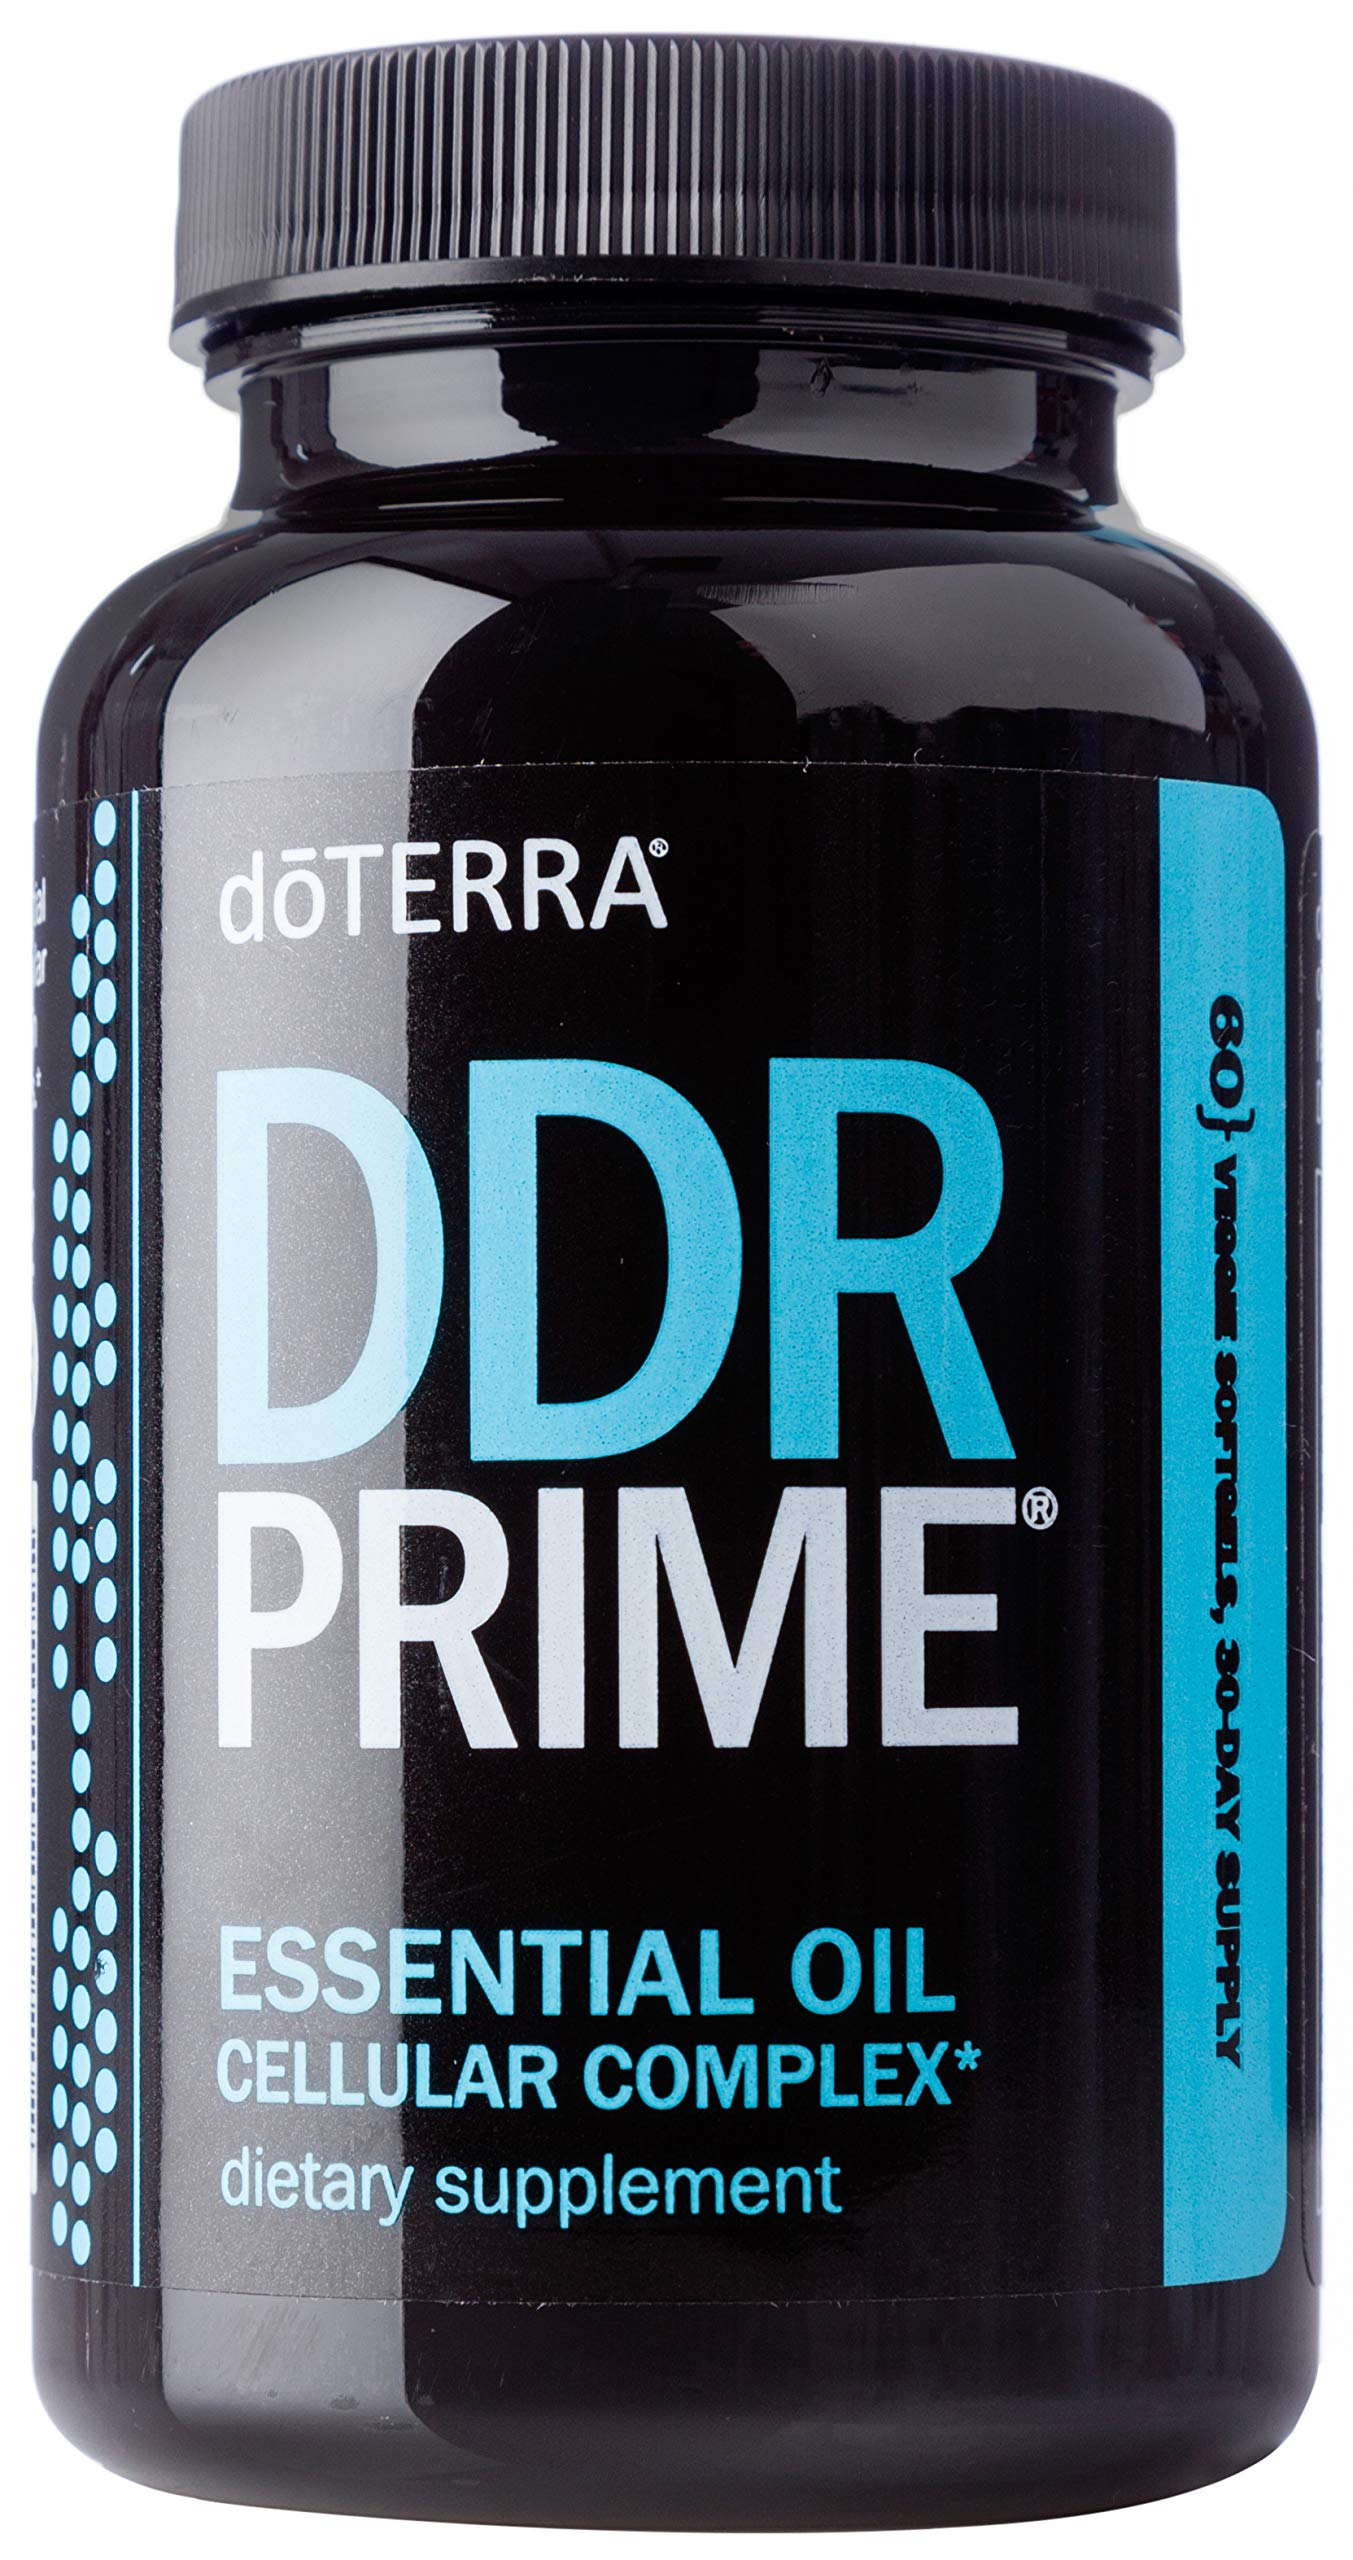 doTERRA - DDR Prime Softgels Essential Oil Complex - 60 Softgels